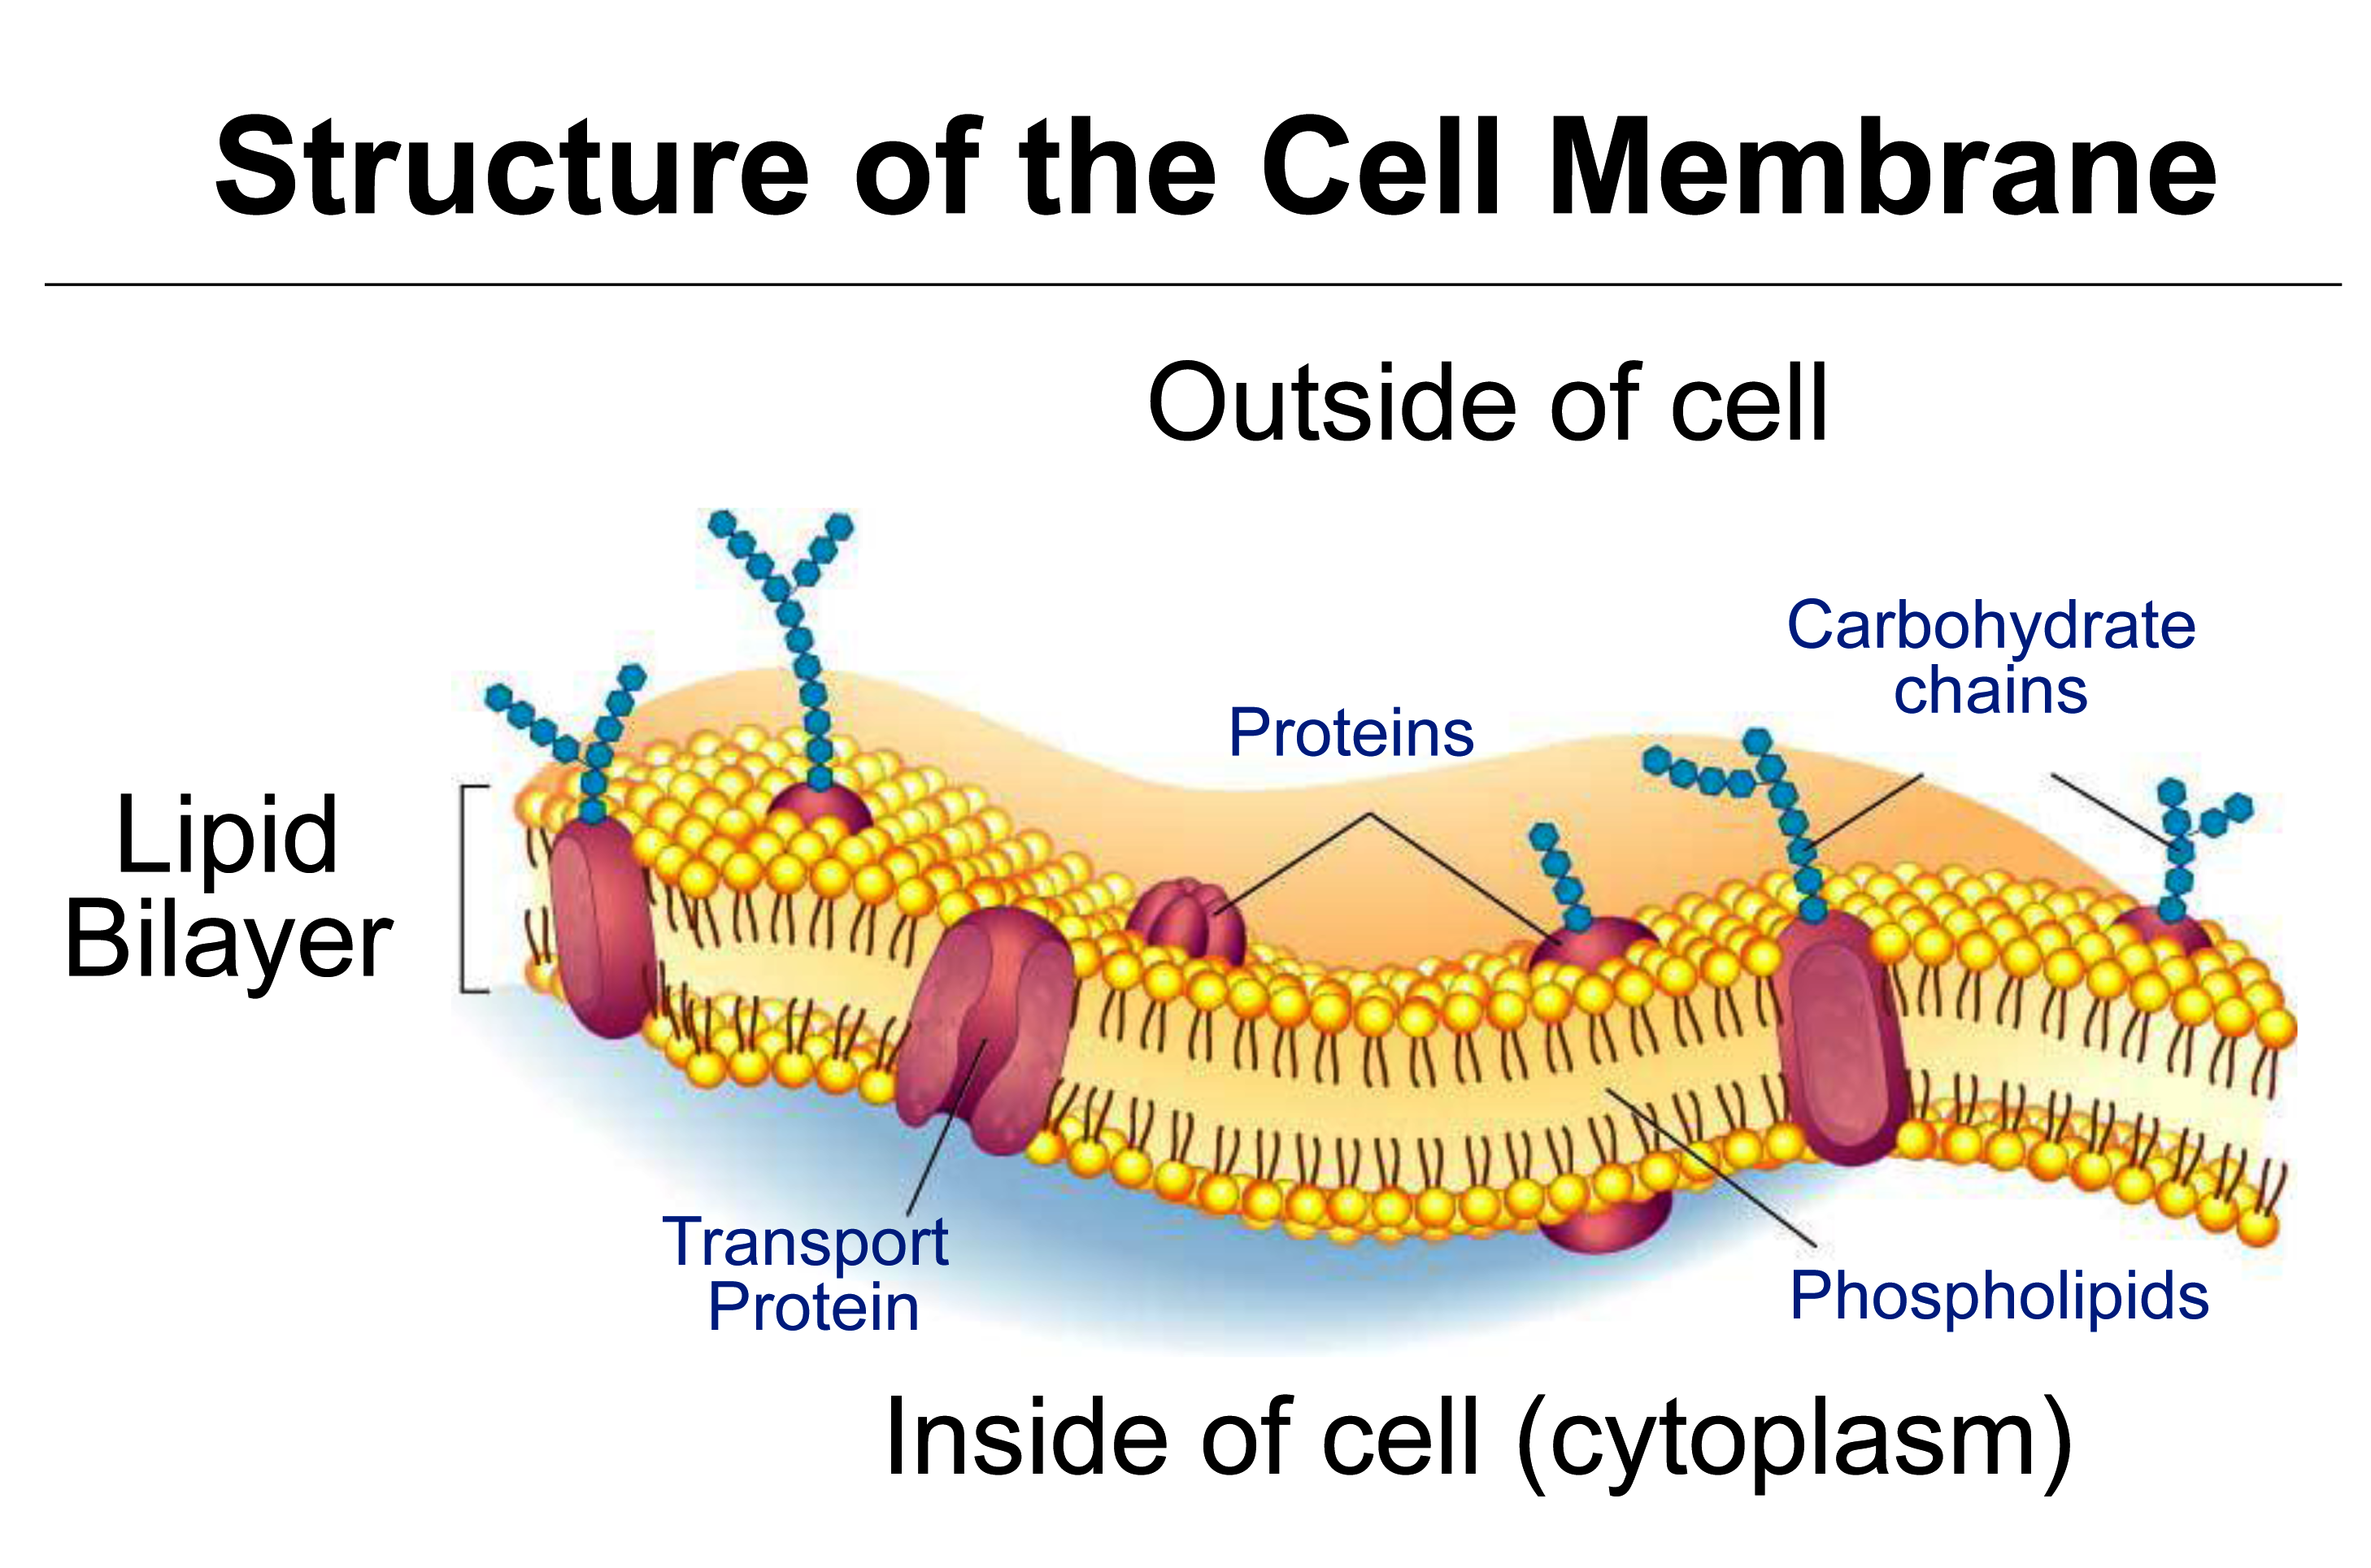 cell membrane diagram mercedes benz w202 wiring diagrams nucleus and cytoplasm picture ella name